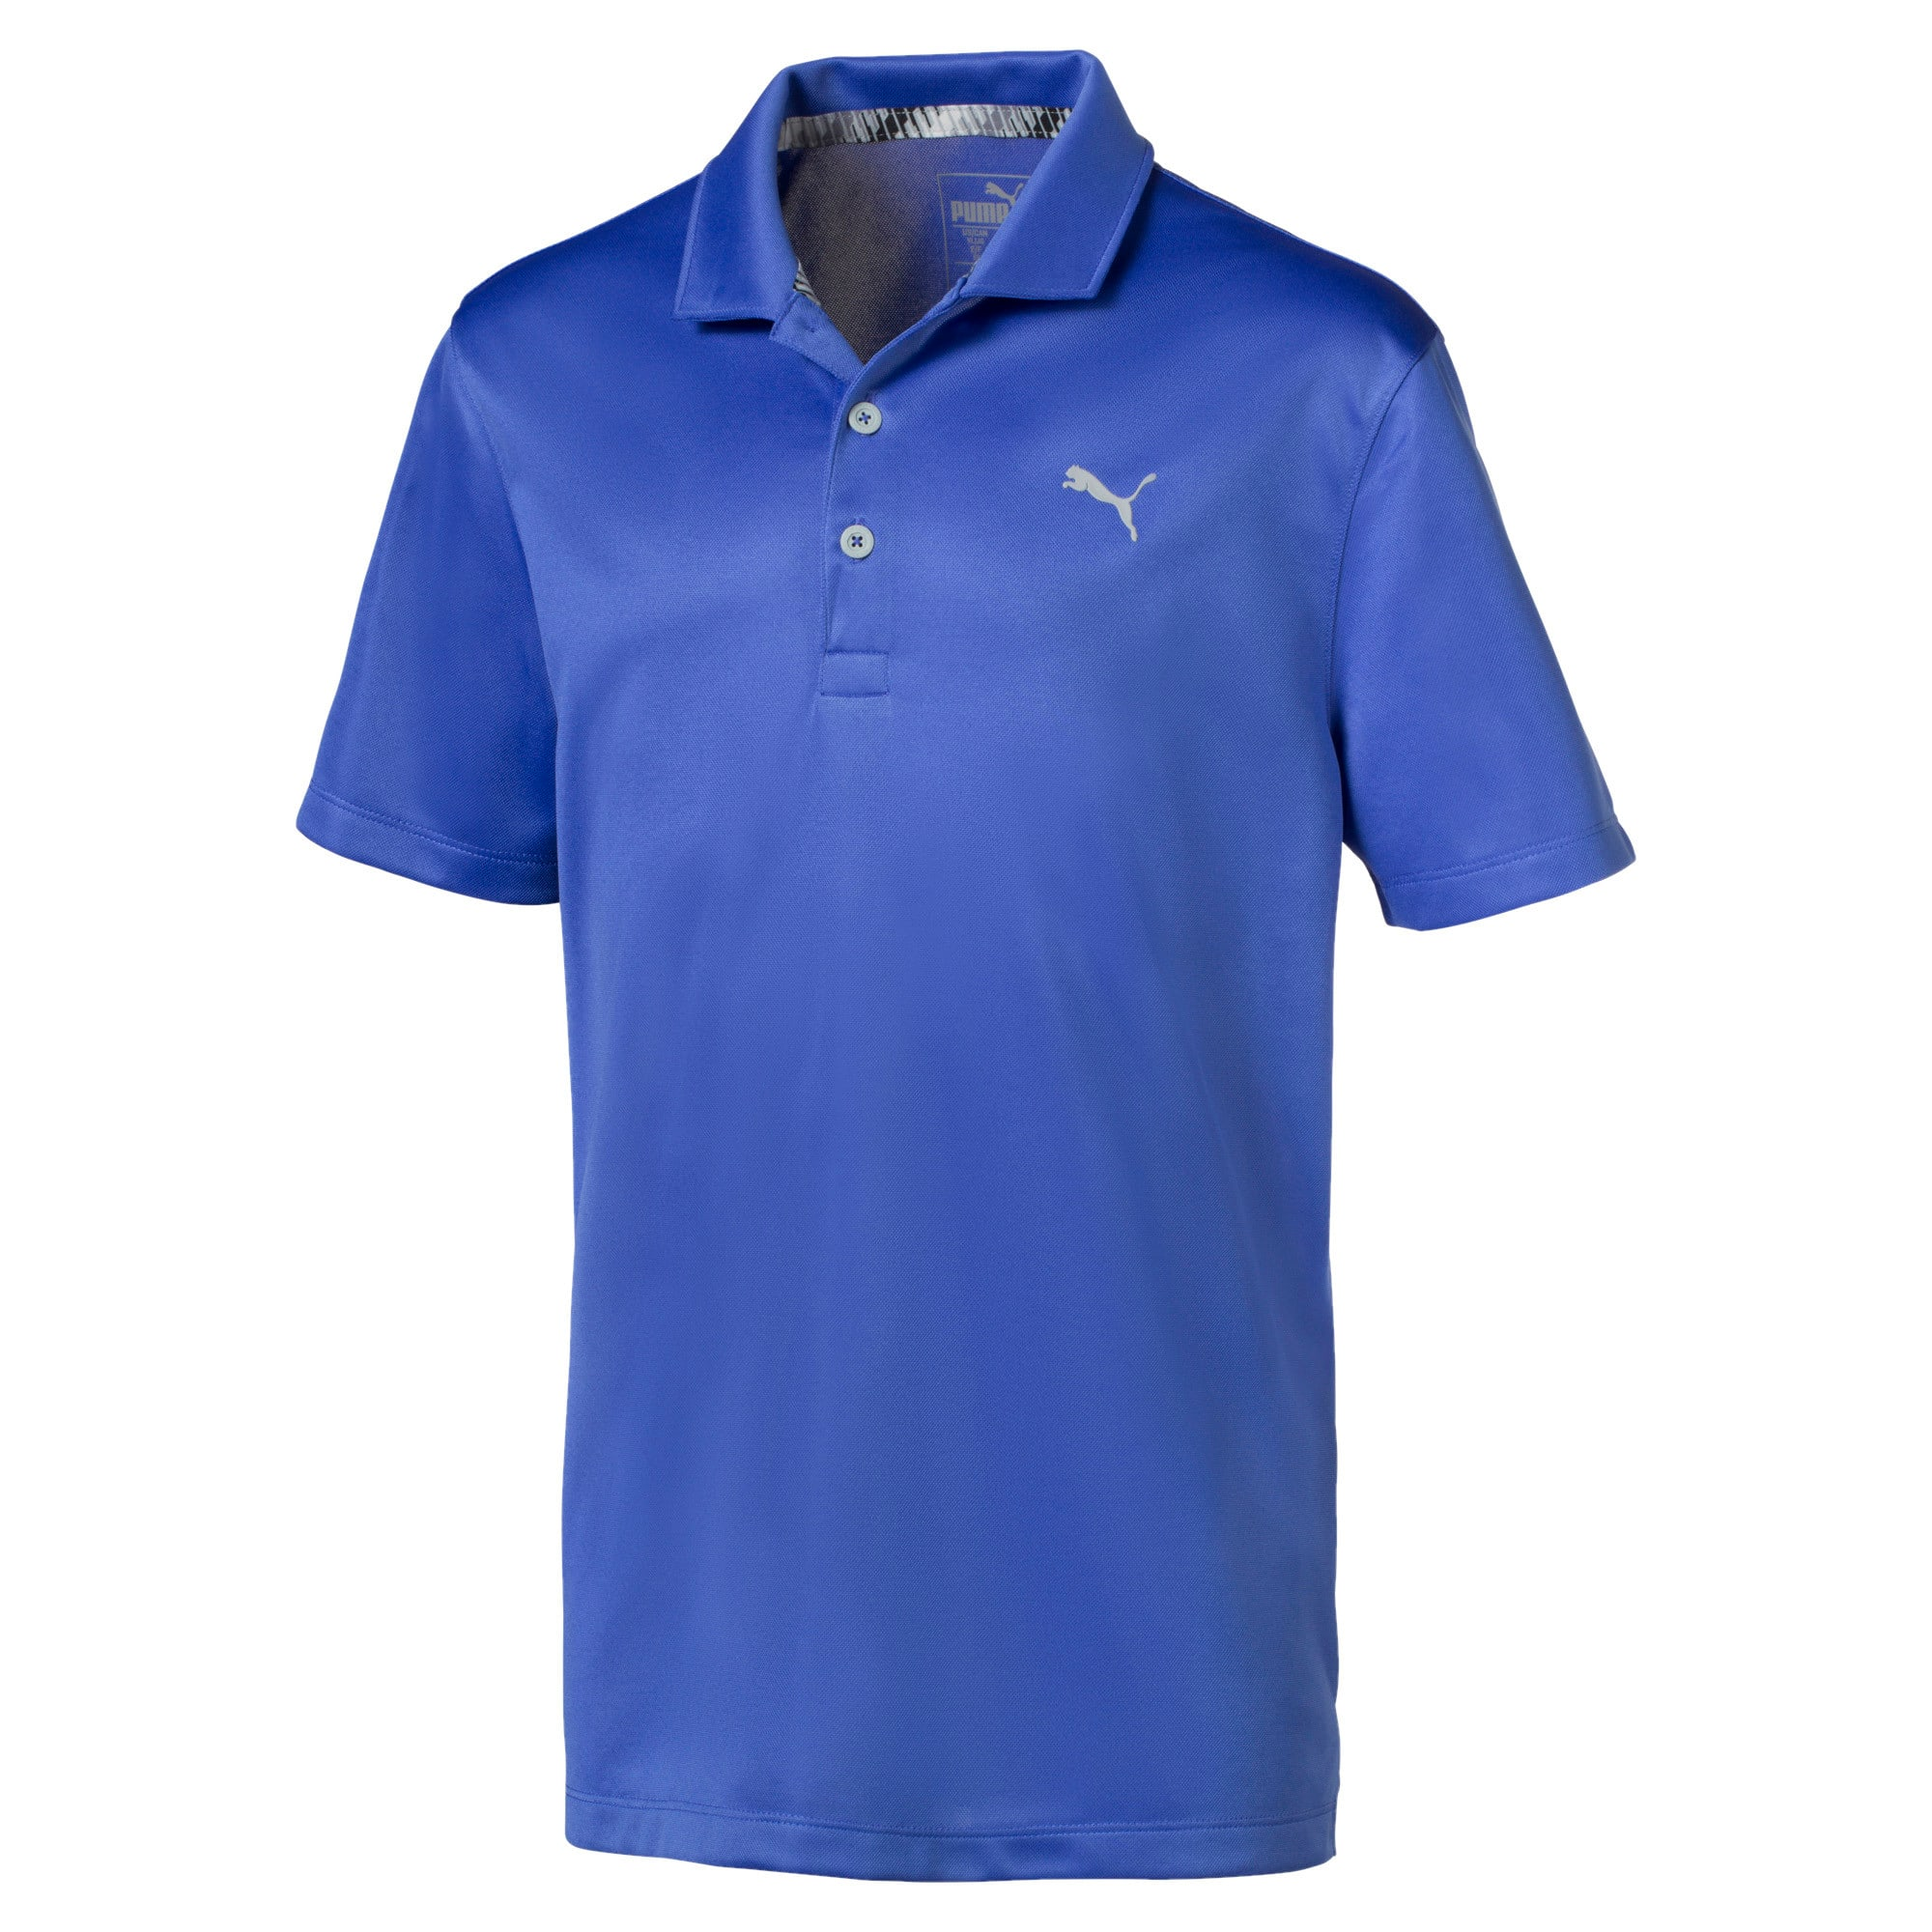 Essential Jungen Golf Polo, Dazzling Blue, large